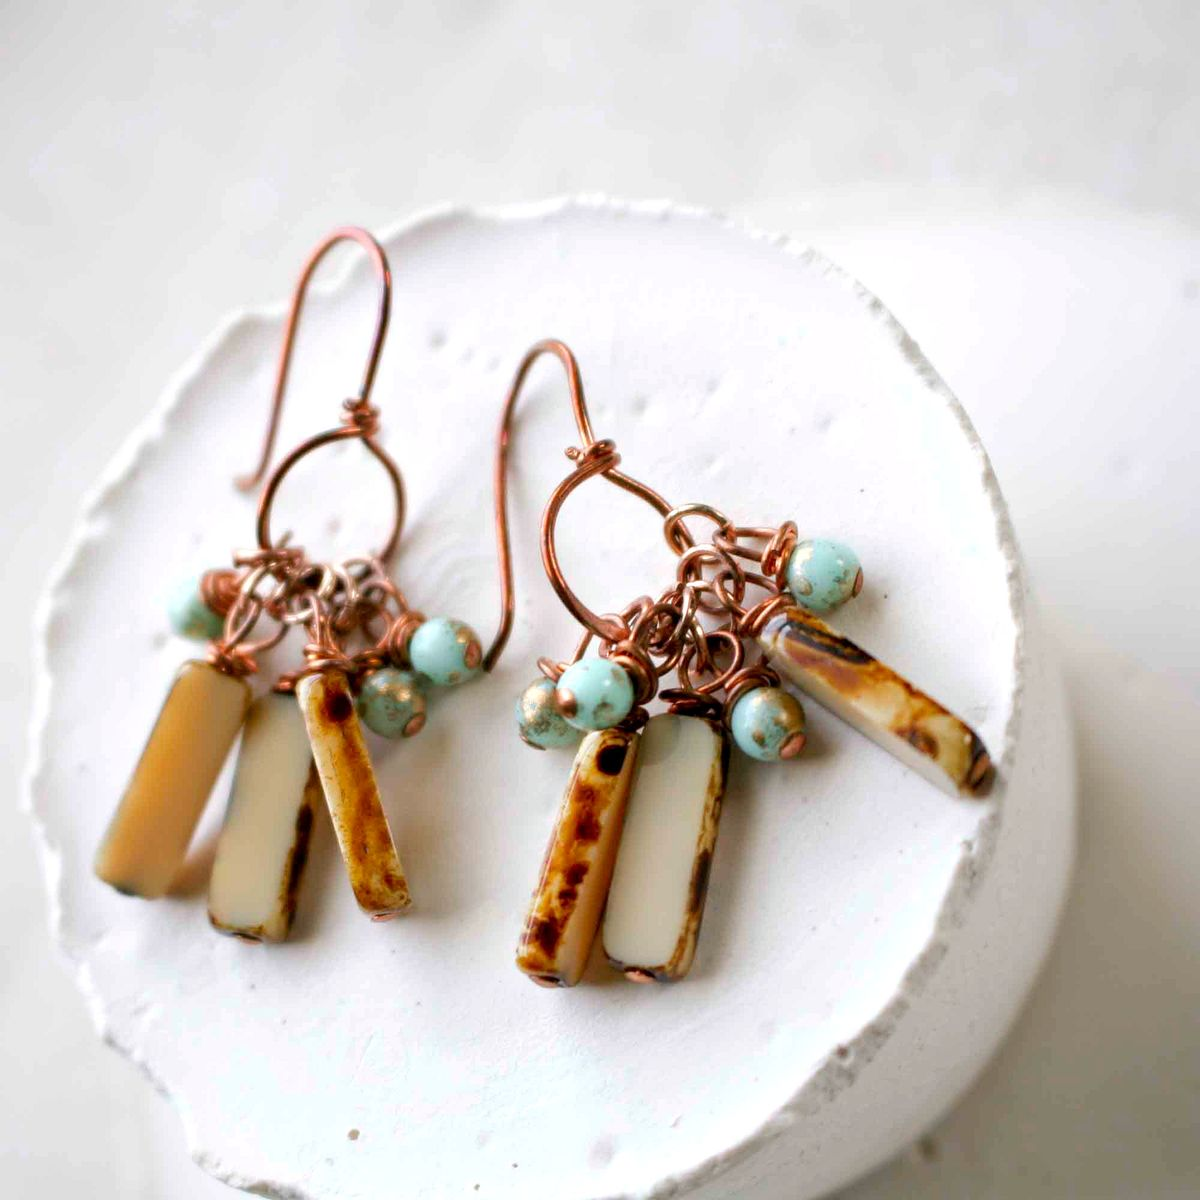 Copper Earrings with Aqua and Brown Czech Glass Beads - product images  of